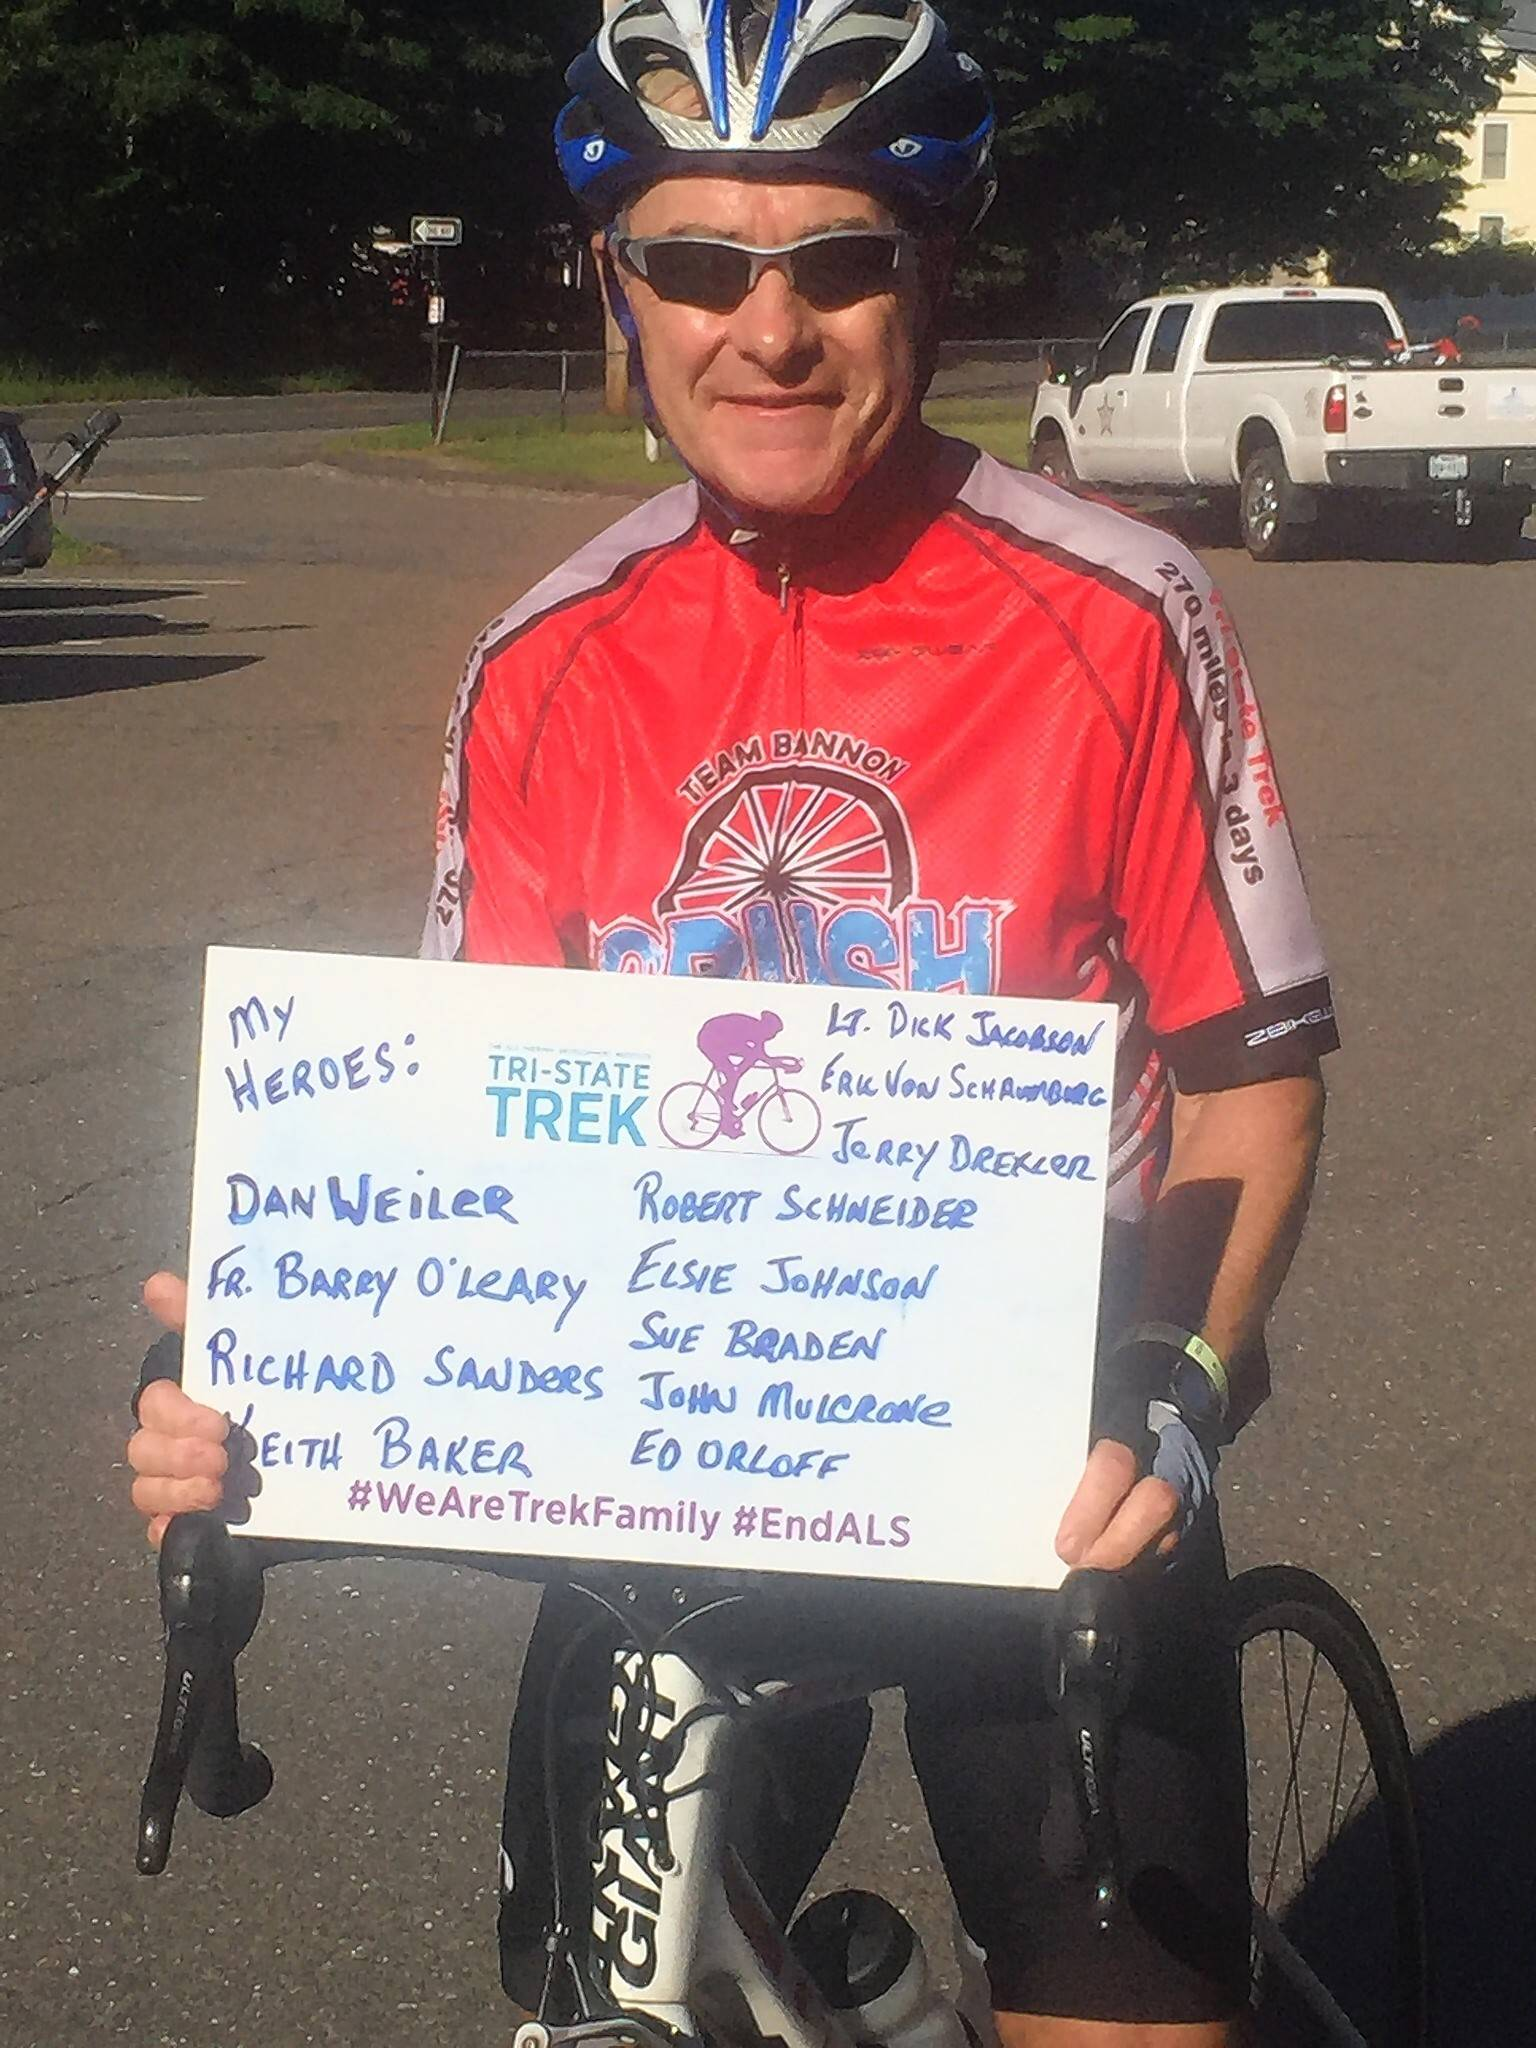 Later this month, Huntley resident Bob Higgins will ride in his fourth Tri-State Trek. The event will begin at Boston College in  Massachusetts and ends June 24 in Greenwich, Connecticut.